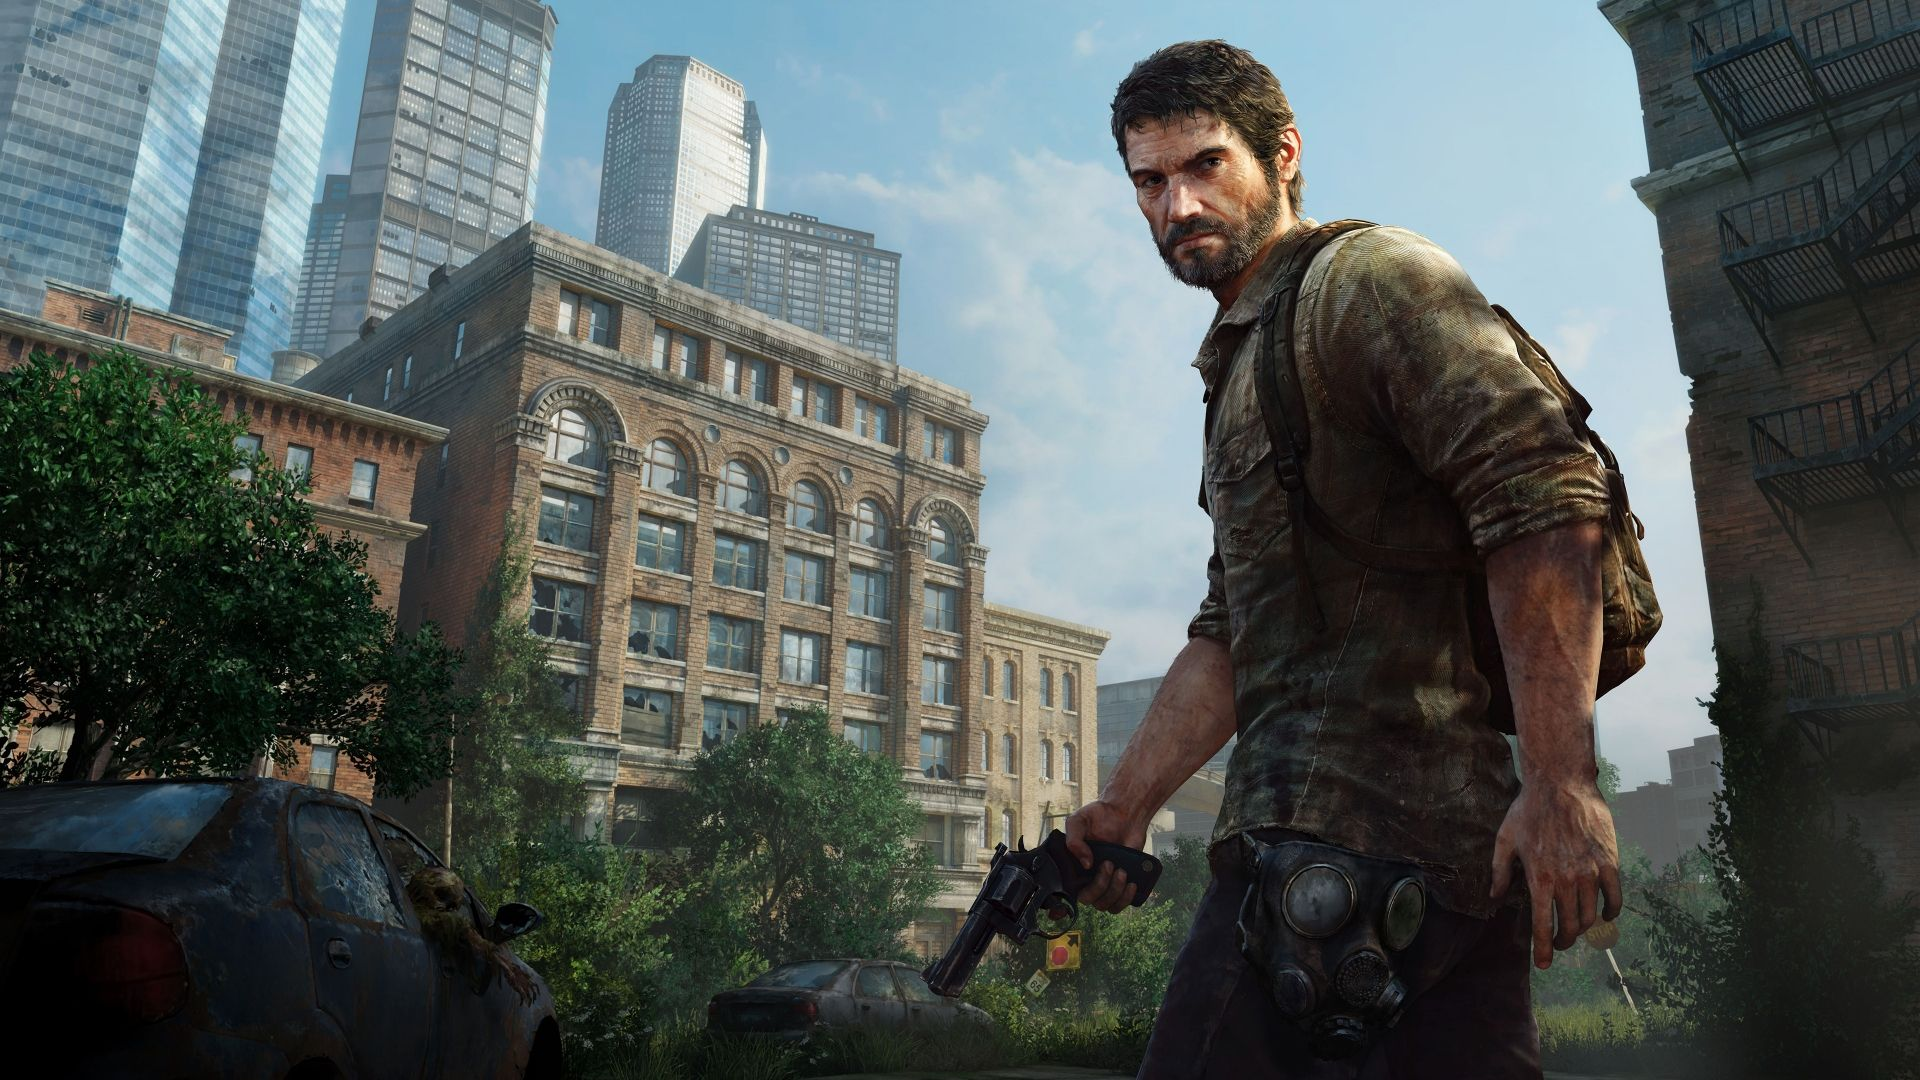 Fondo de pantalla de The Last of Us 1920x1080